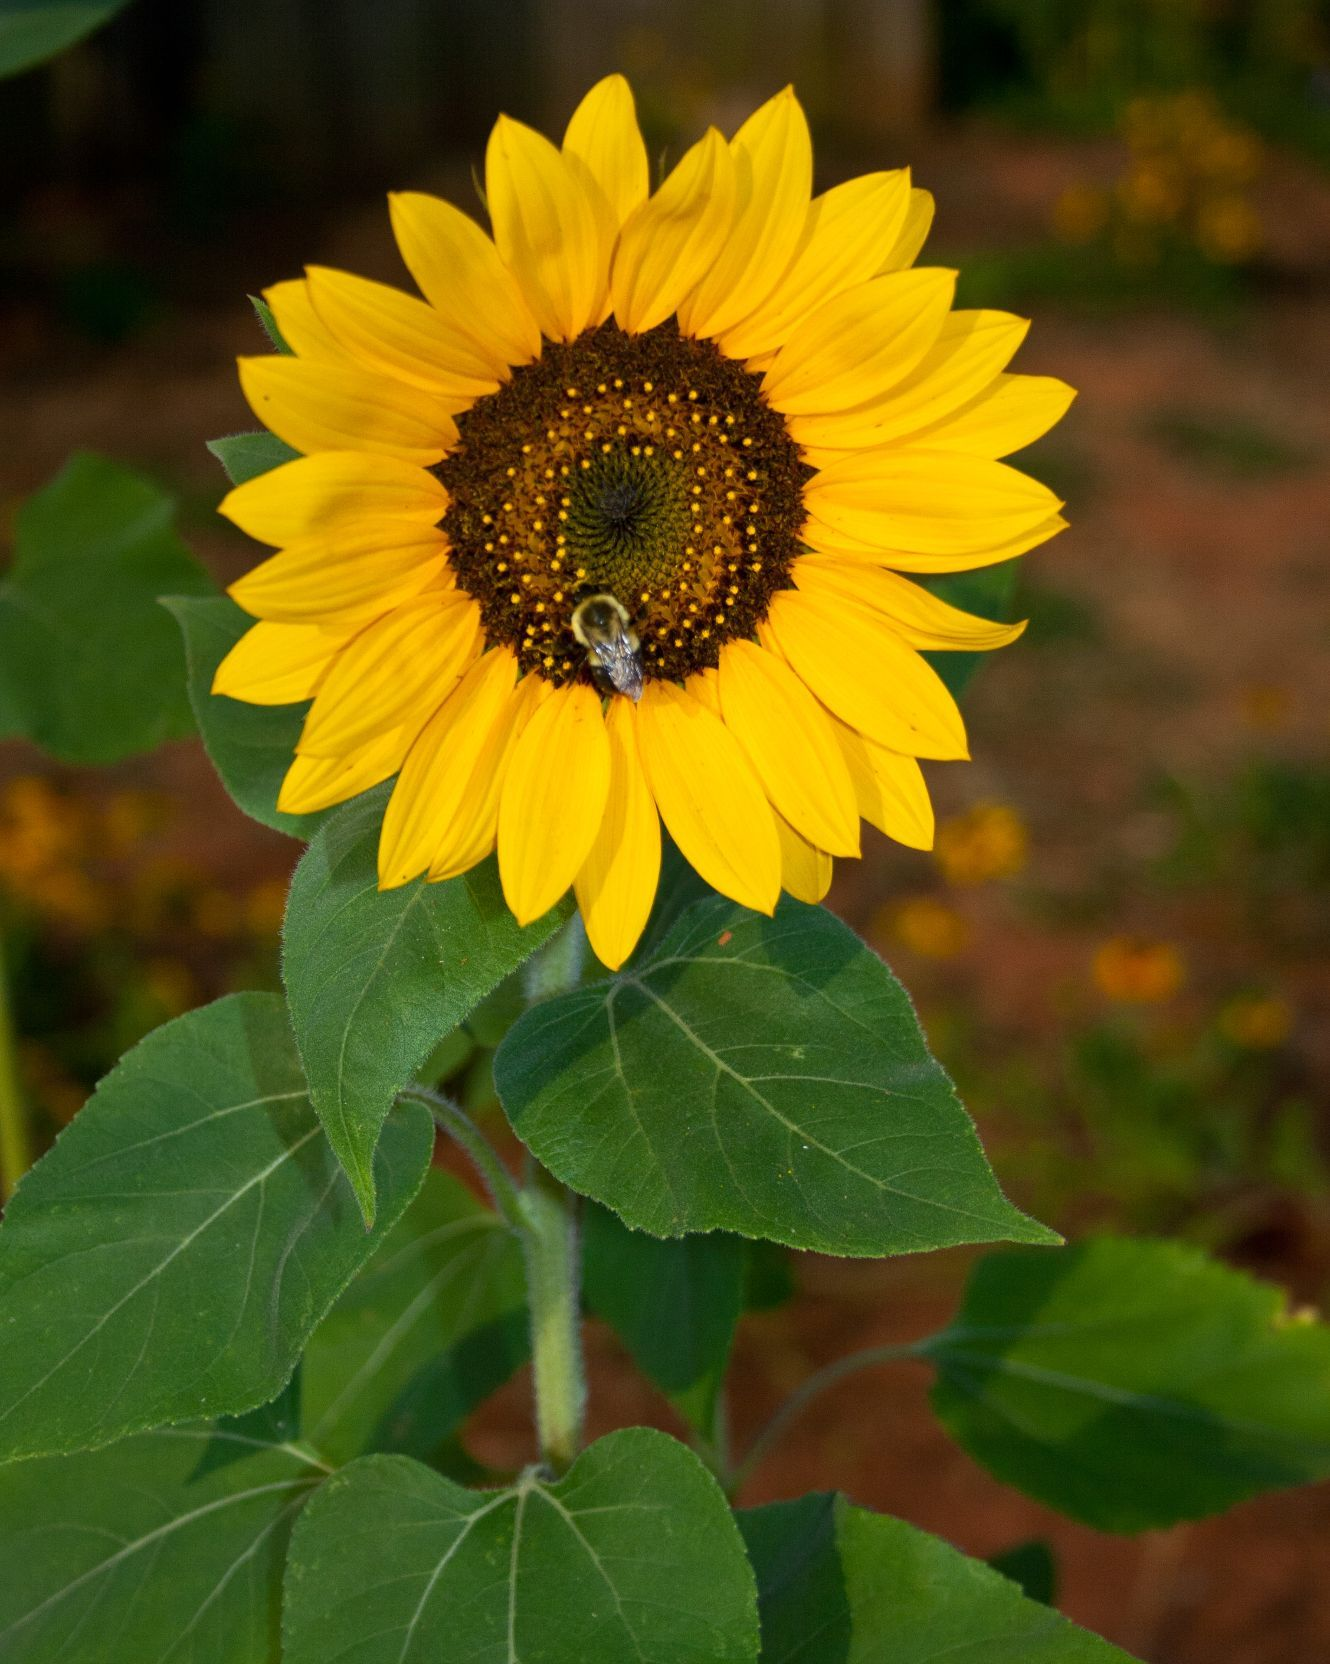 sunflower divorced singles dating site If you're divorced and catholic and want to start dating again, but want to meets singles with the same faith and values, join our divorced catholics dating site, divorced catholics dating.